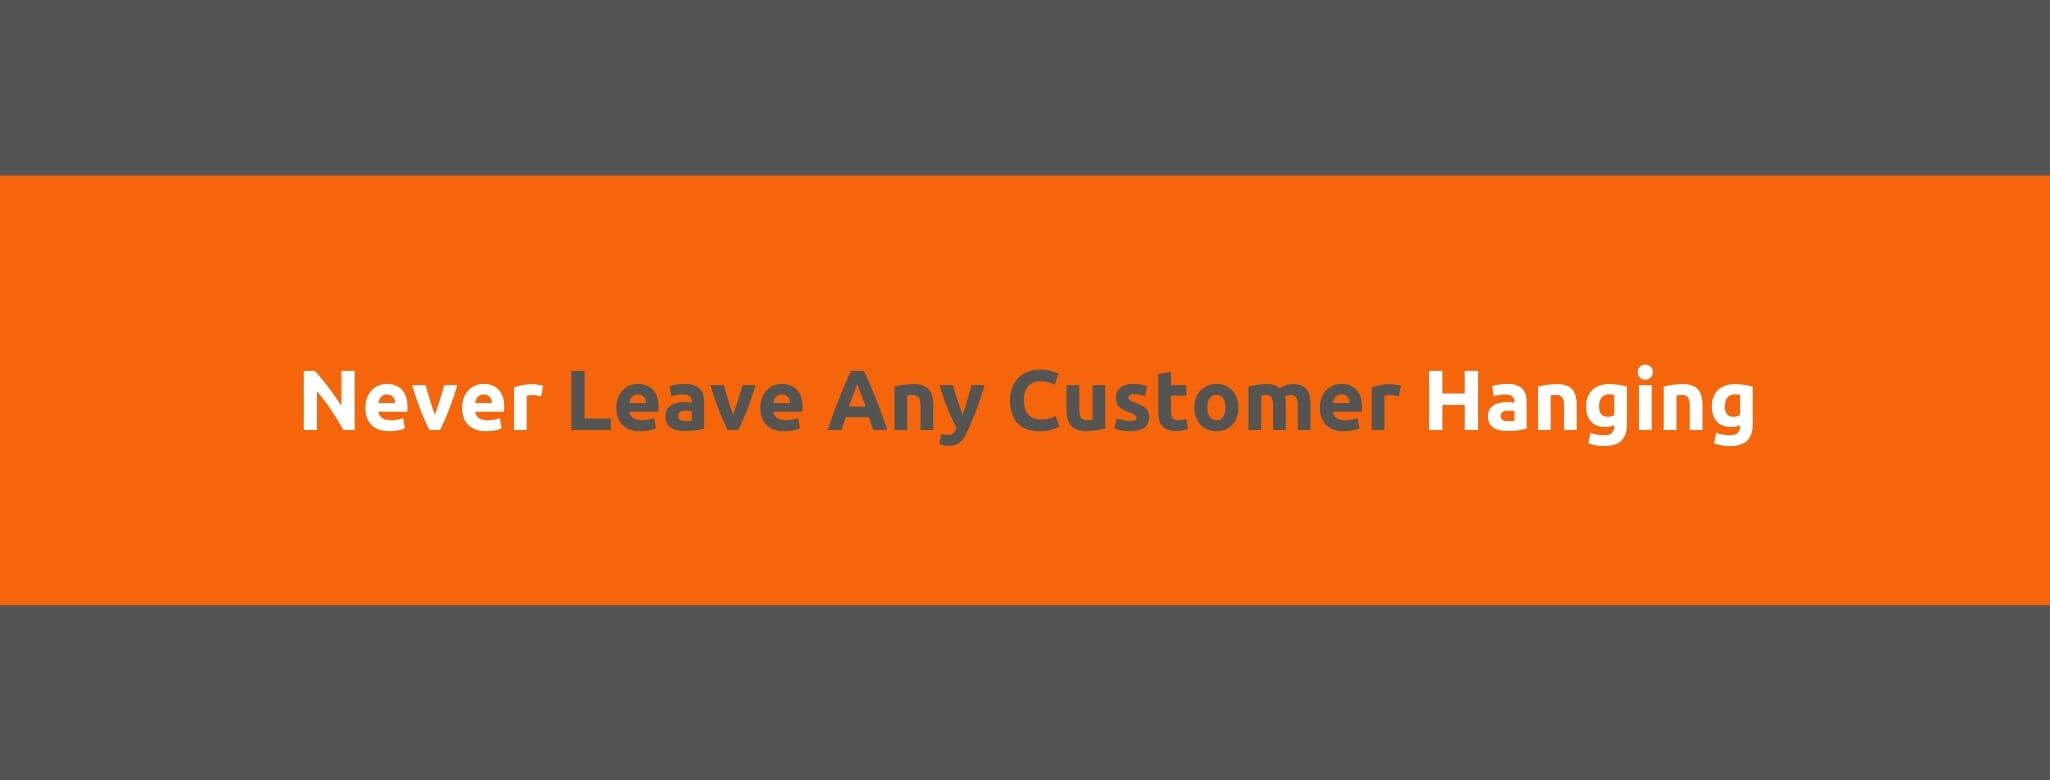 Never Leave Any Customer Hanging - 25 Rules for Great Customer Service - Replyco Helpdesk Software for eCommerce